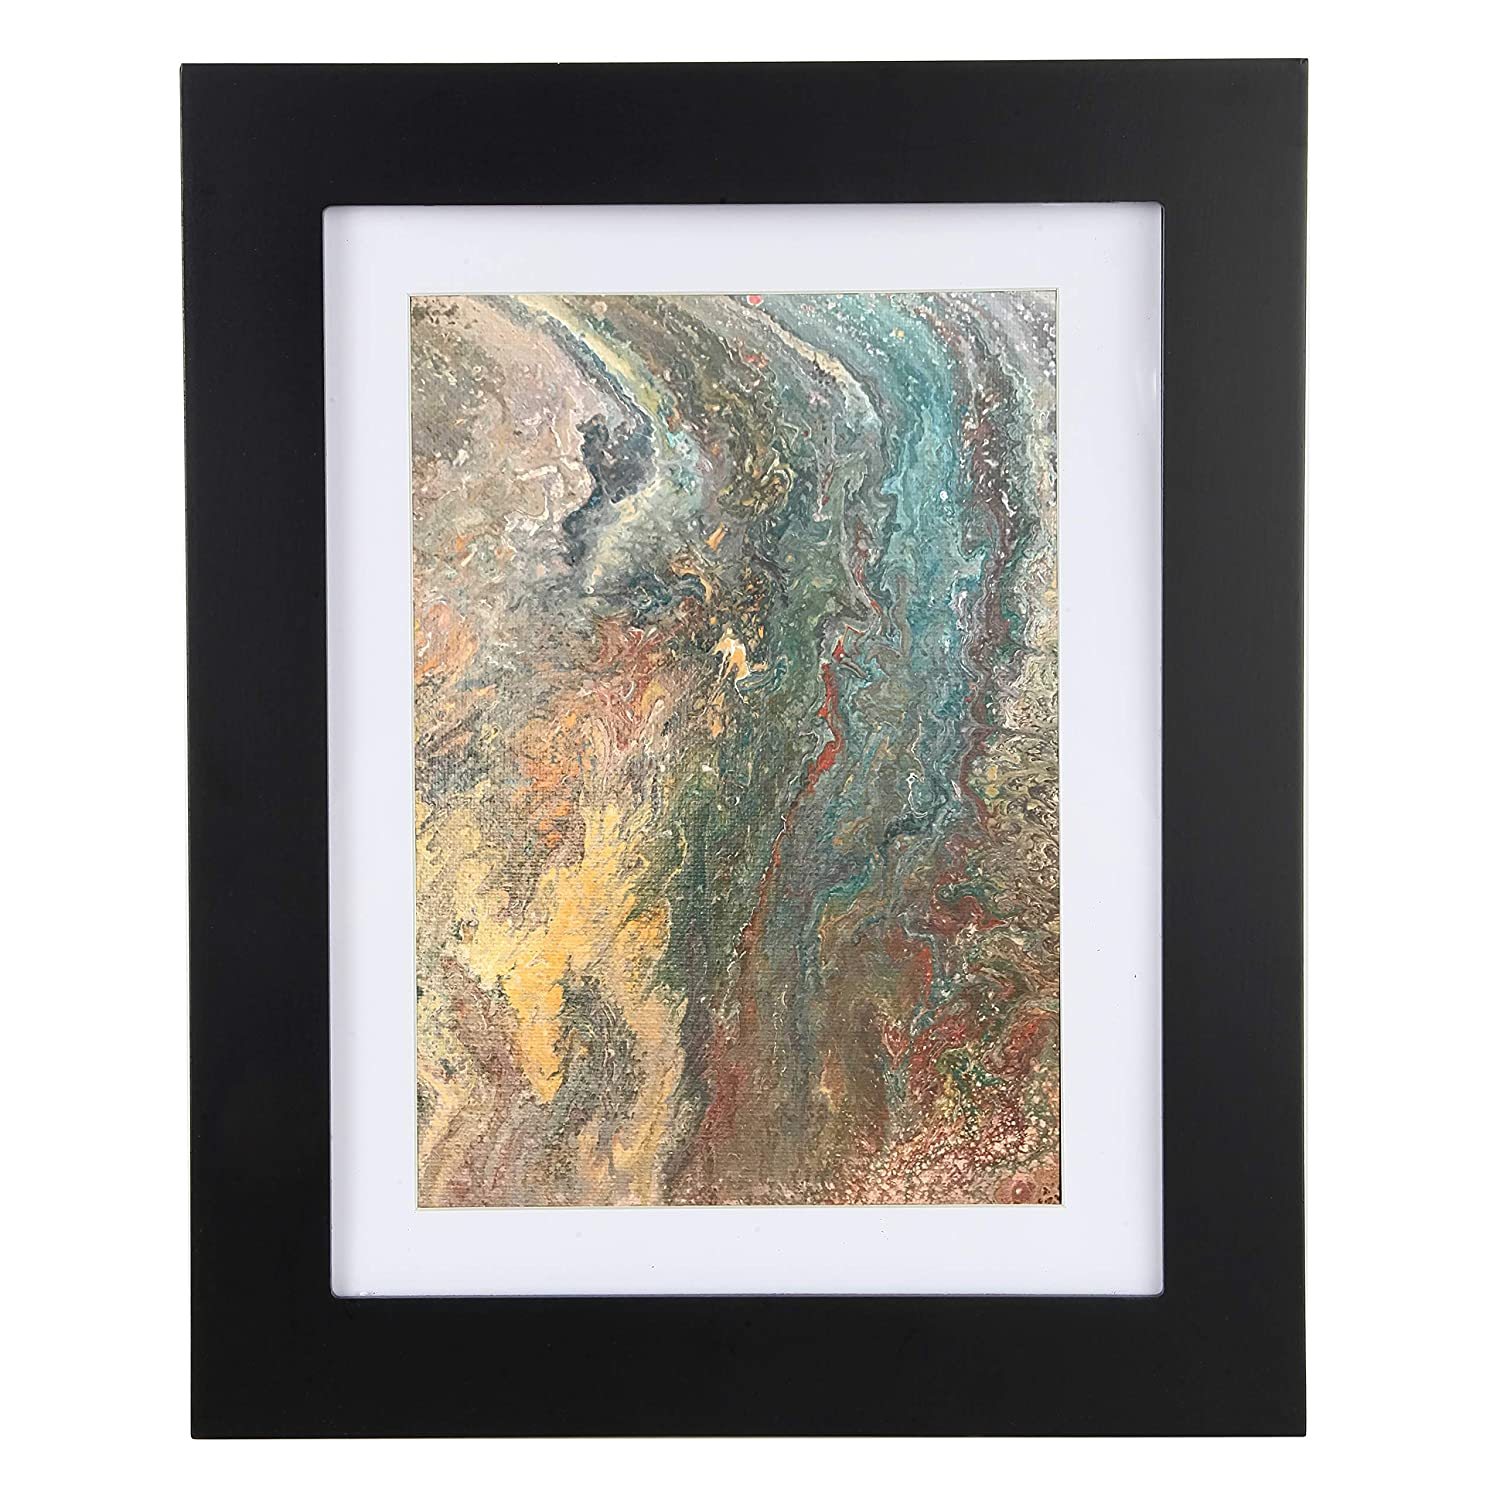 Easy Change Artwork Frame - Black - Fits 9 x 12 Artwork. Frame Measures 14.5 x 11.5 x 1 3/4 9R-IA1M-EB08